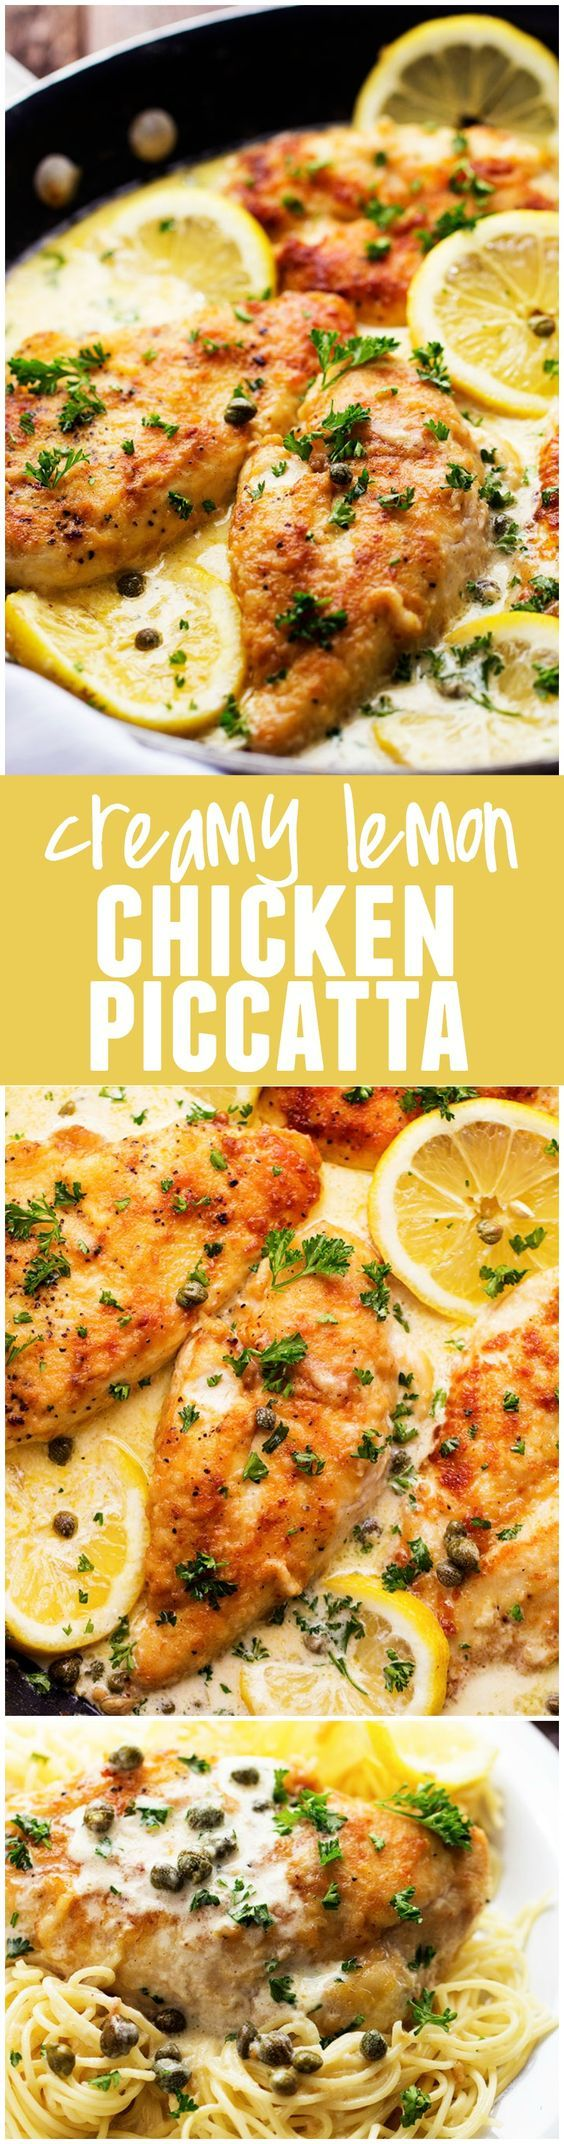 Creamy Lemon Chicken Piccatta